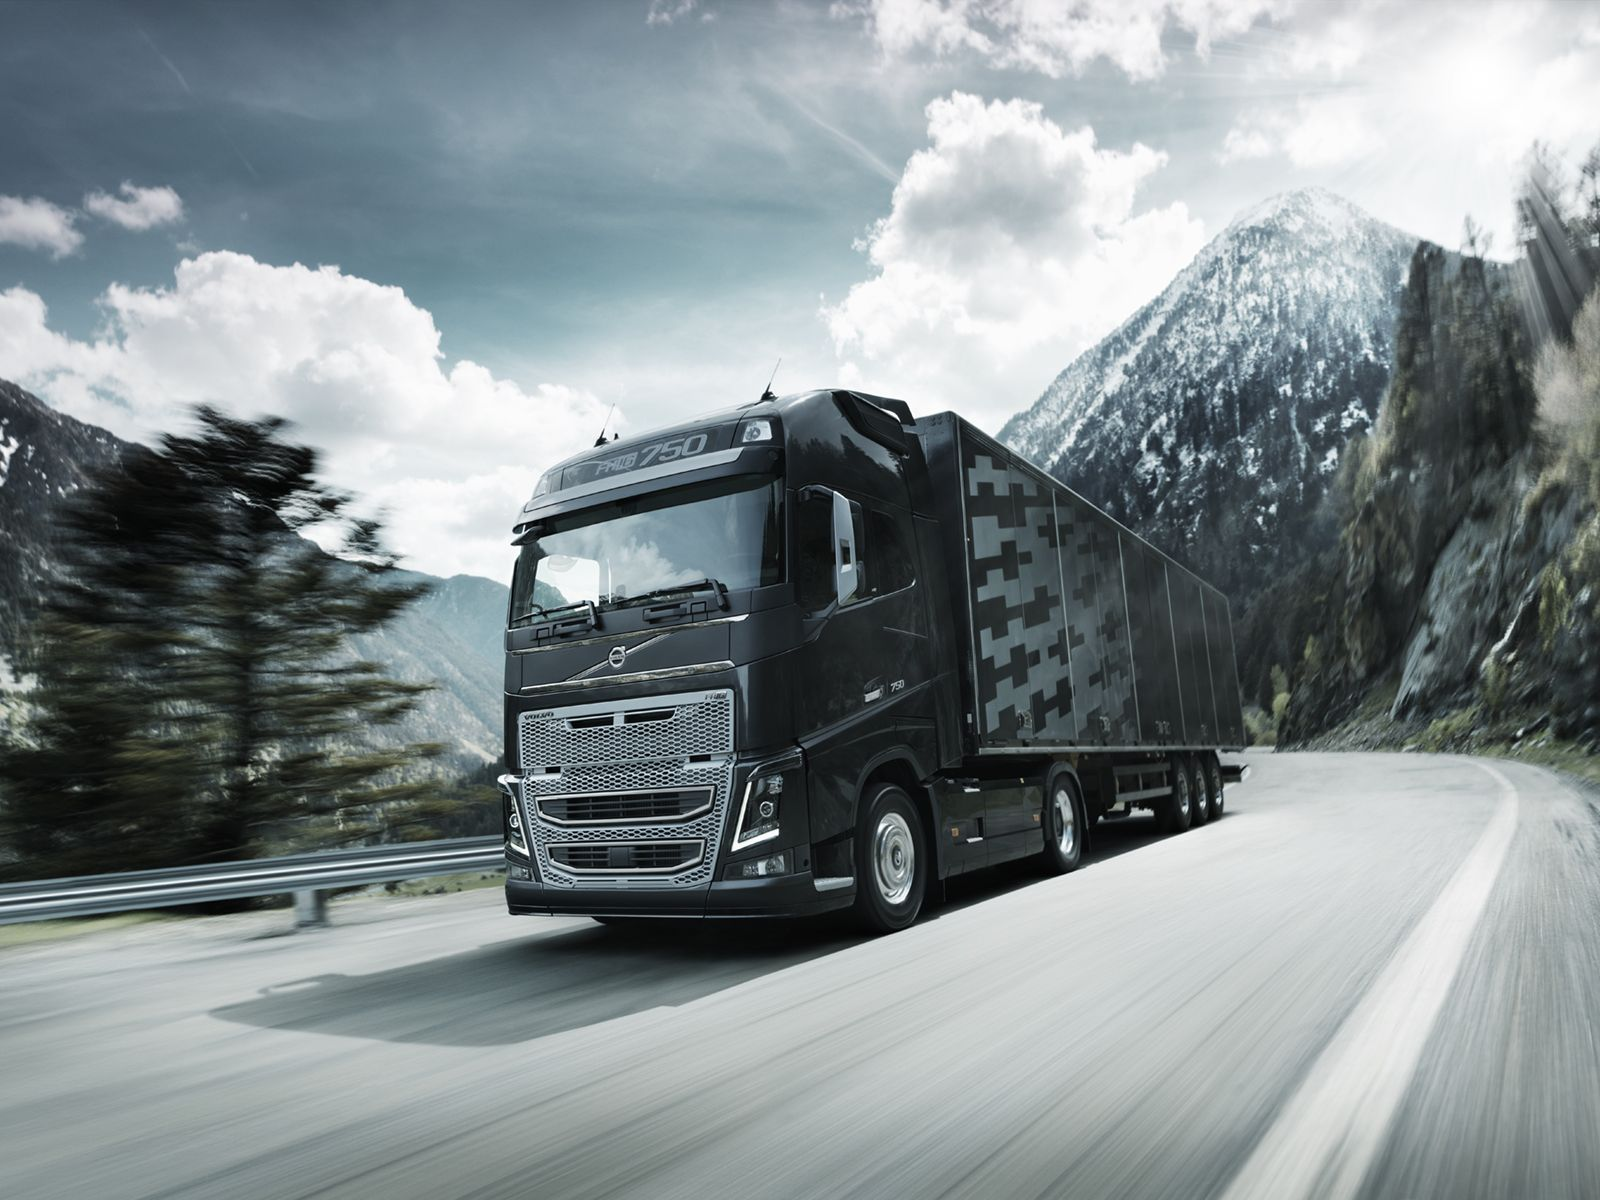 volvo truck wallpapers high resolution. search results for u201cnew volvo wallpaperu201d u2013 adorable wallpapers truck high resolution